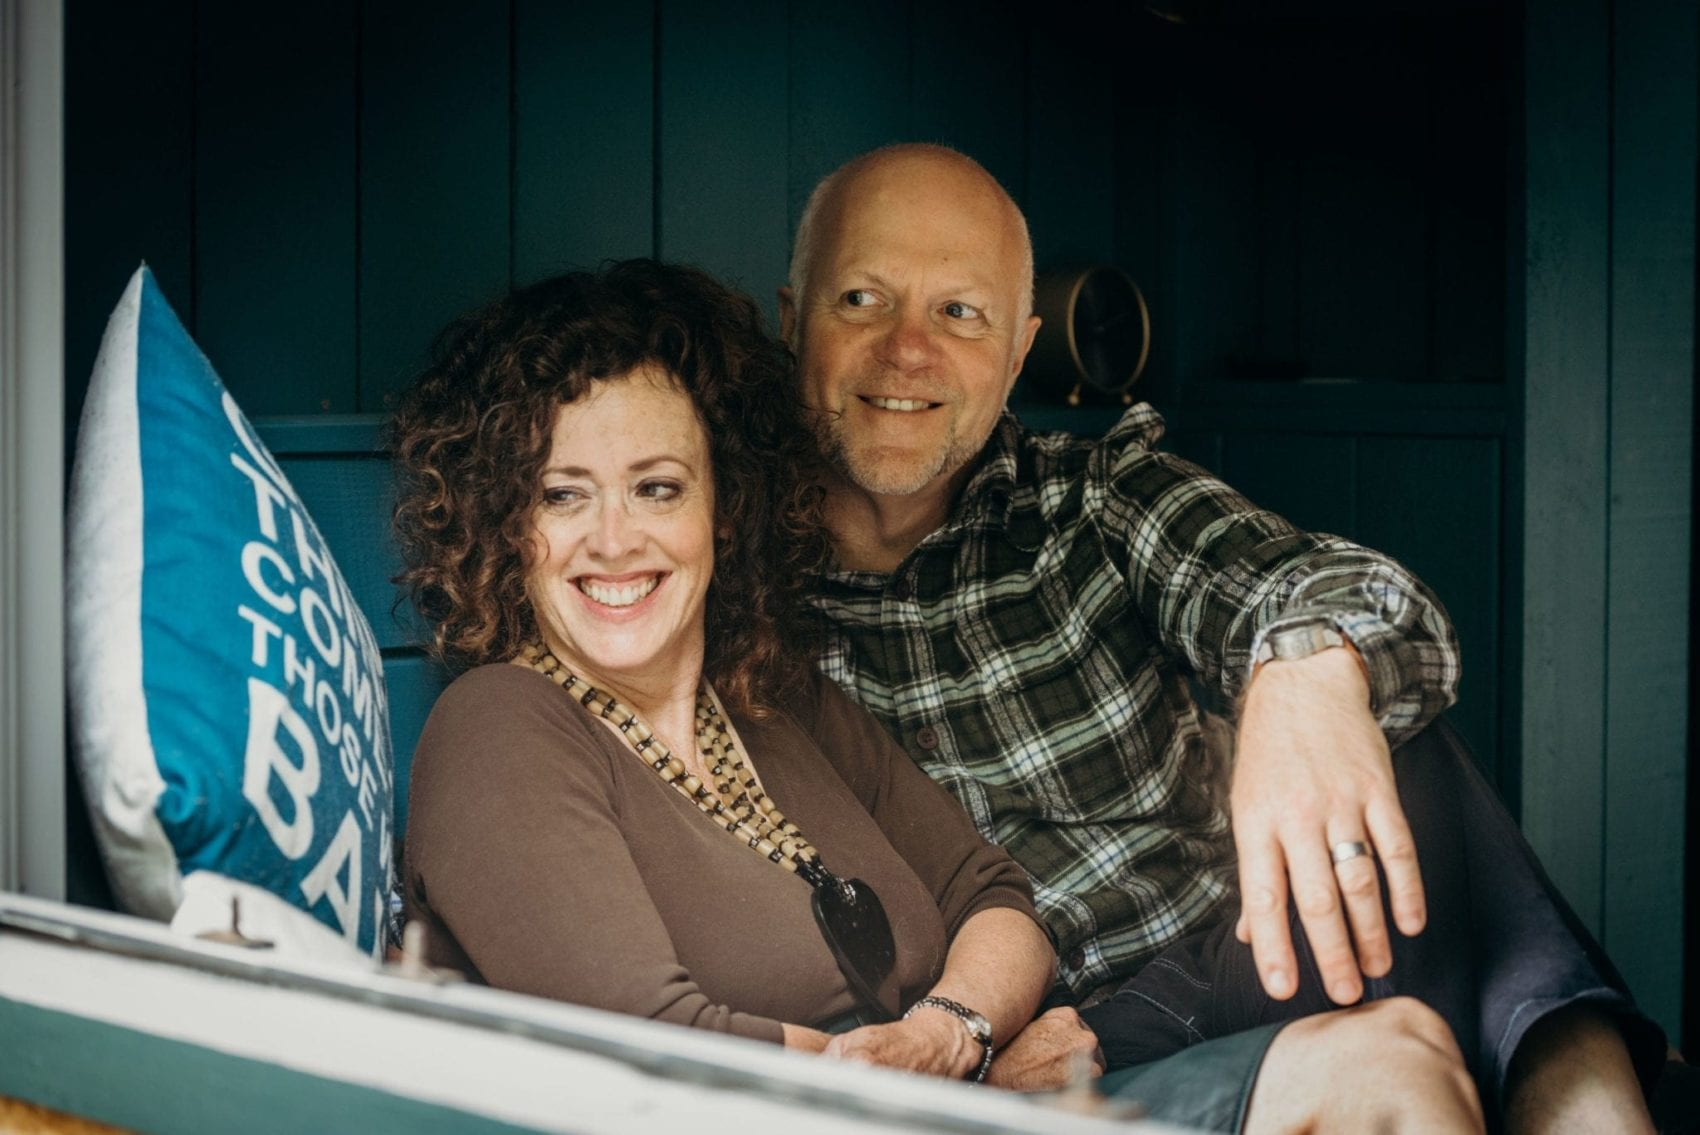 Nicola and Euan Owners and Founders of Ever After: A Dartmoor Wedding